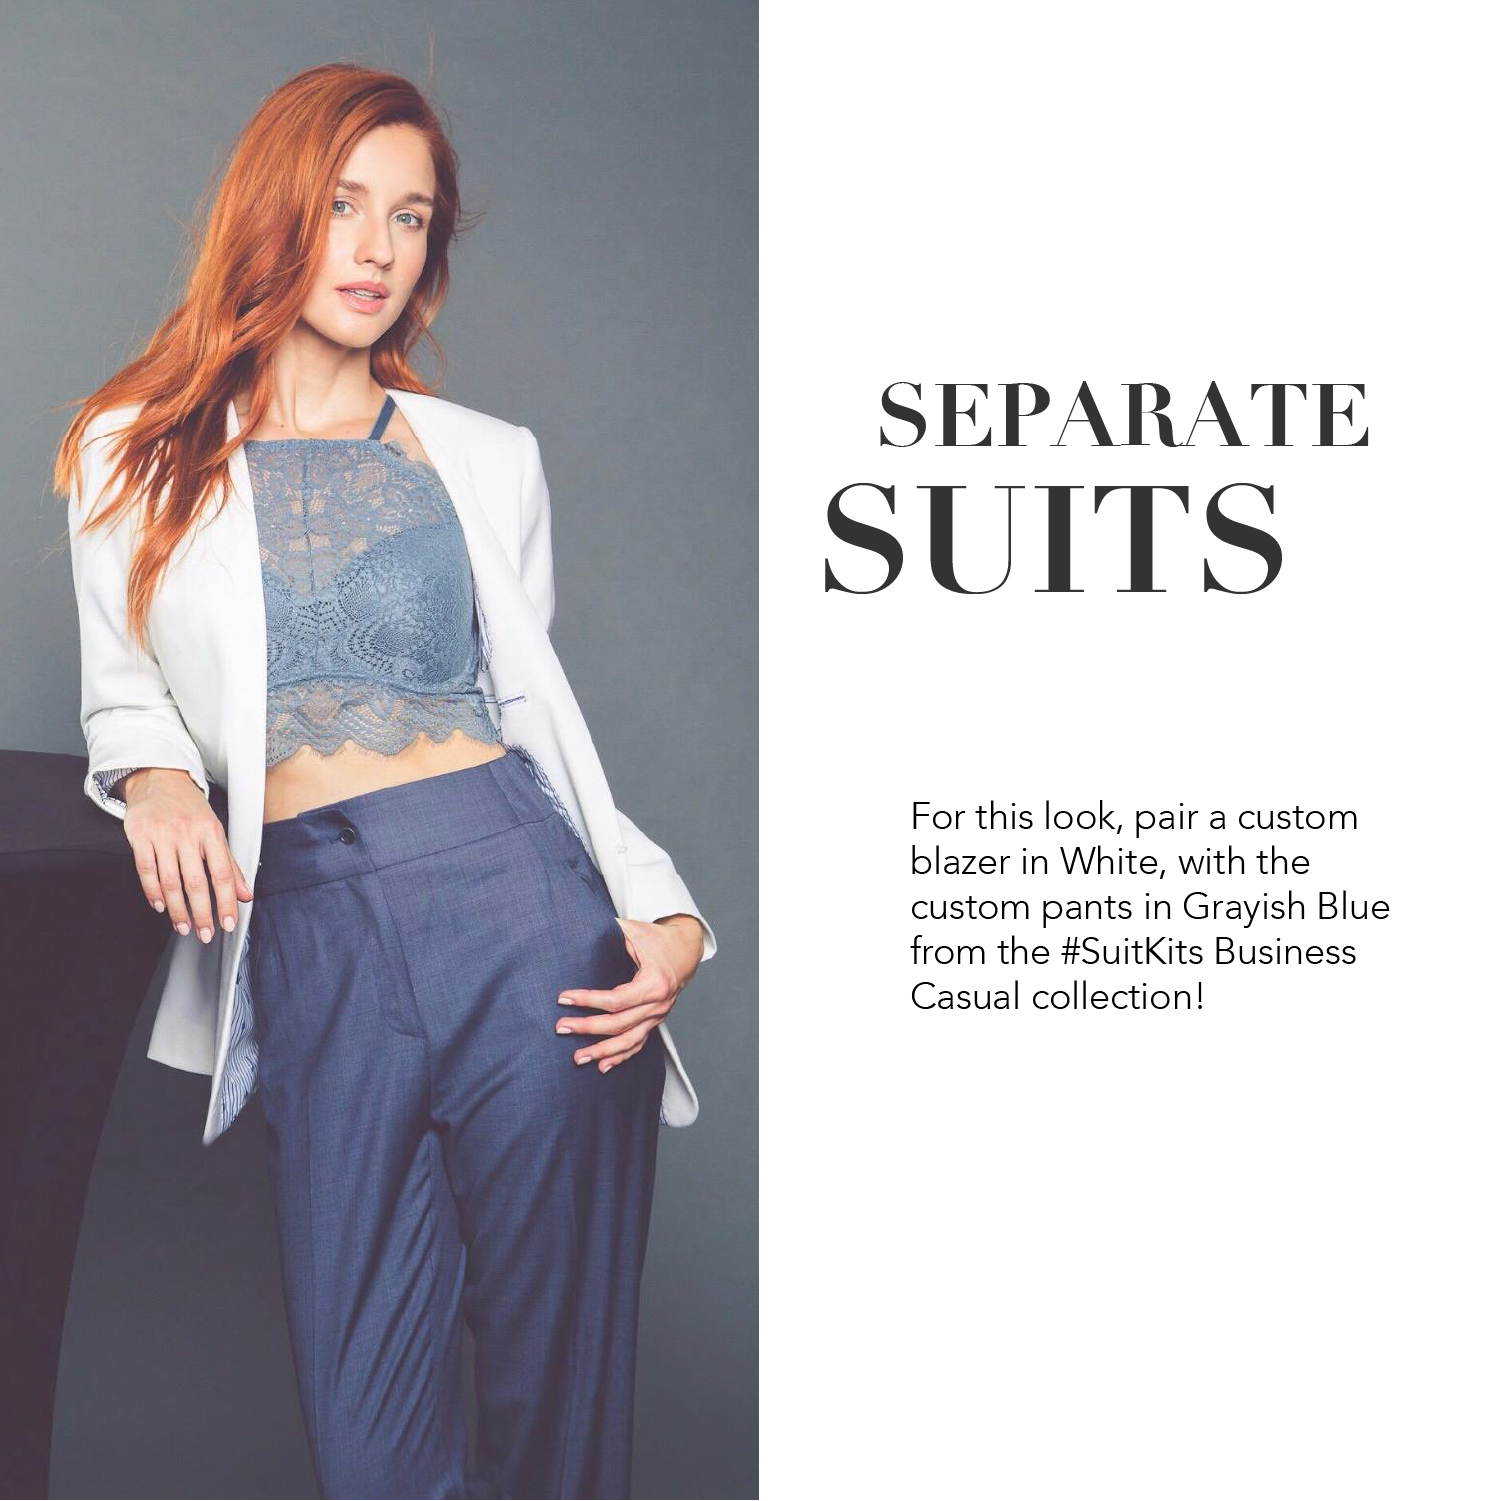 Suitkits-media-v2-04.png